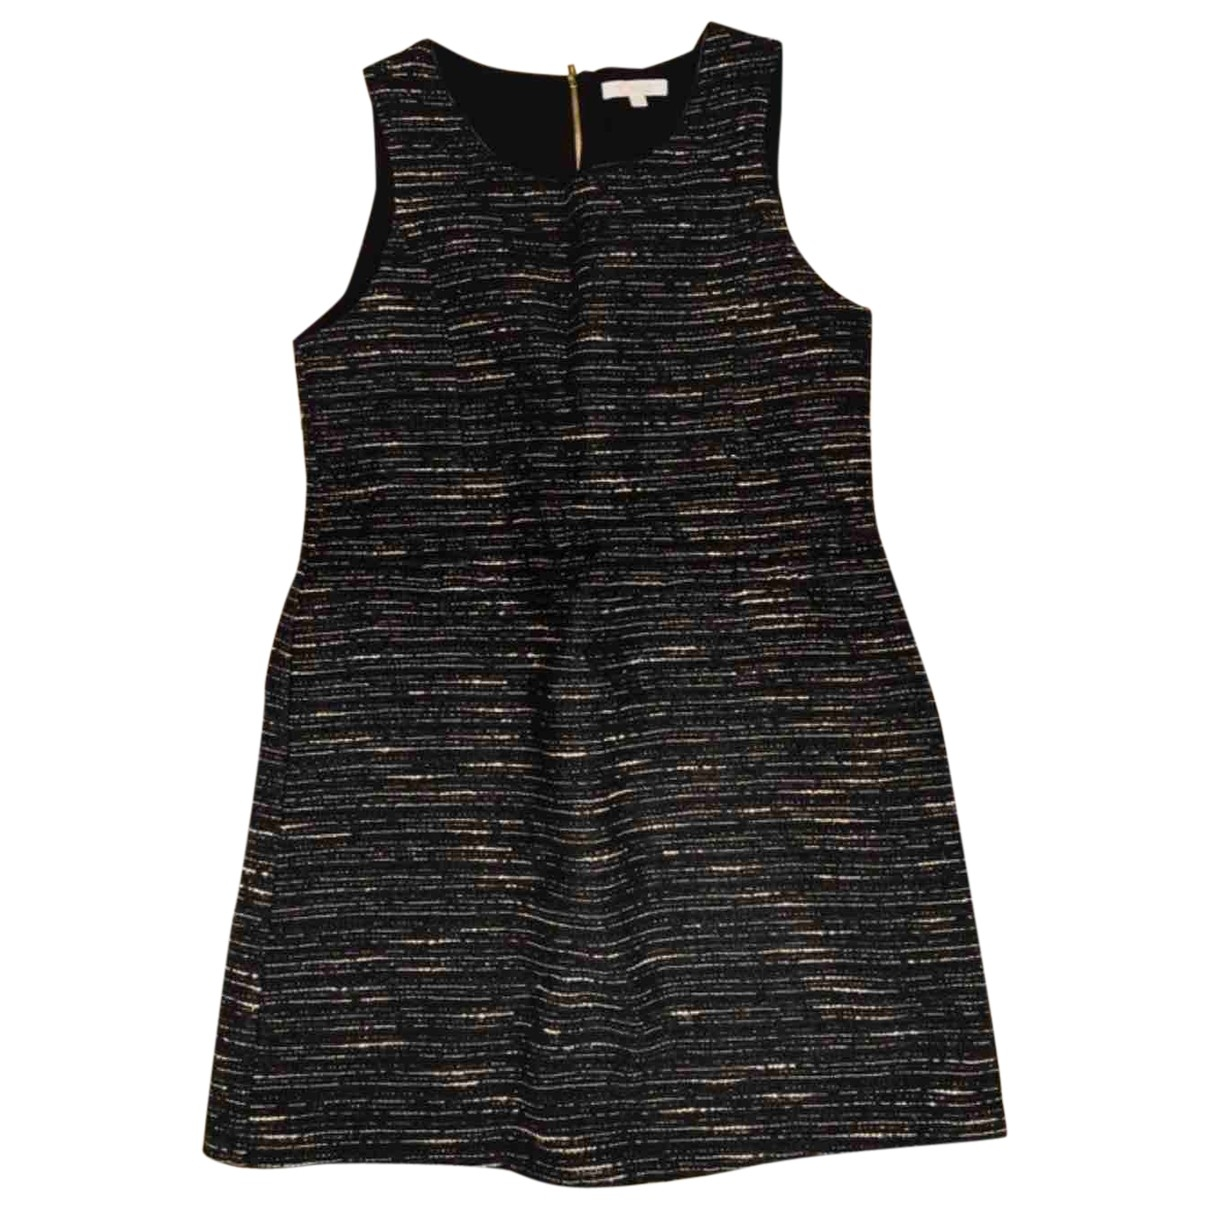 Chloé \N Black Cotton dress for Kids 10 years - up to 142cm FR